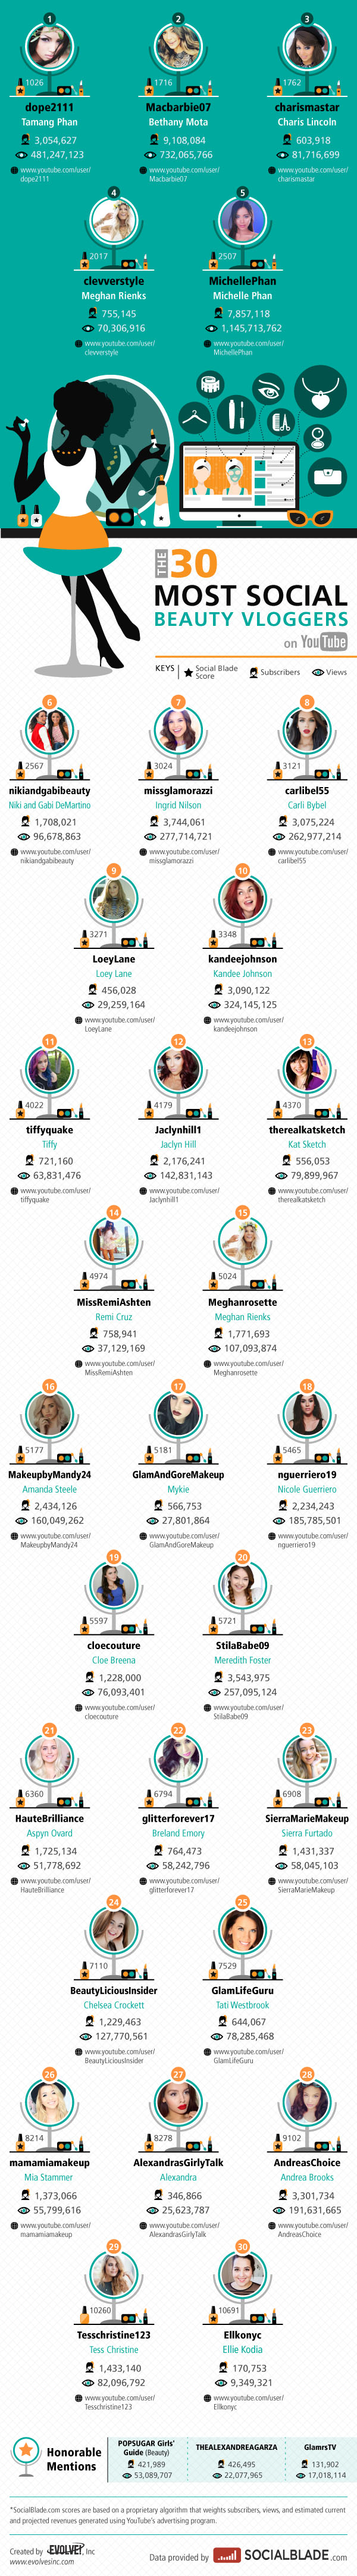 The 30 Most Social Beauty Vloggers on Youtube Infographic